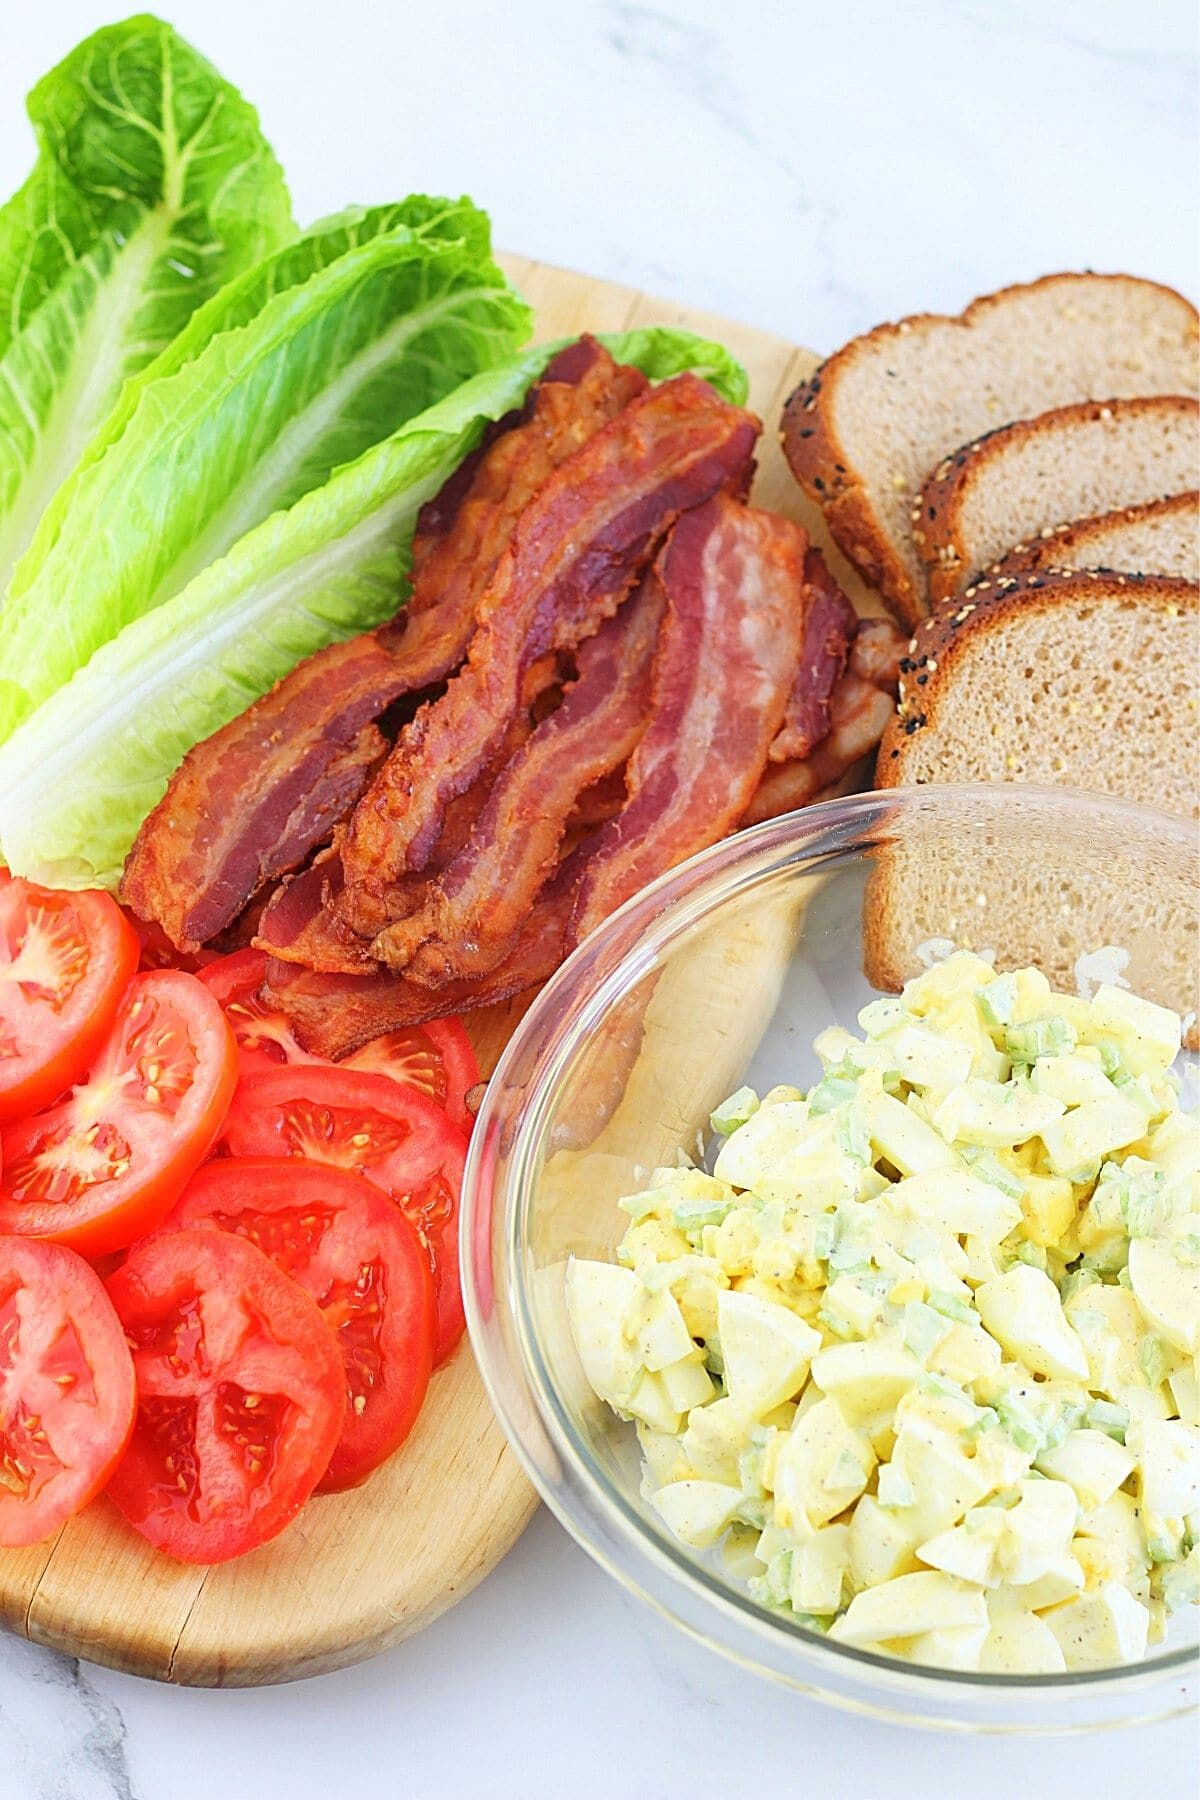 a bowl of egg salad surrounded by sliced tomatoes, cooked bacon, romaine lettuce leaves, and slices of bread